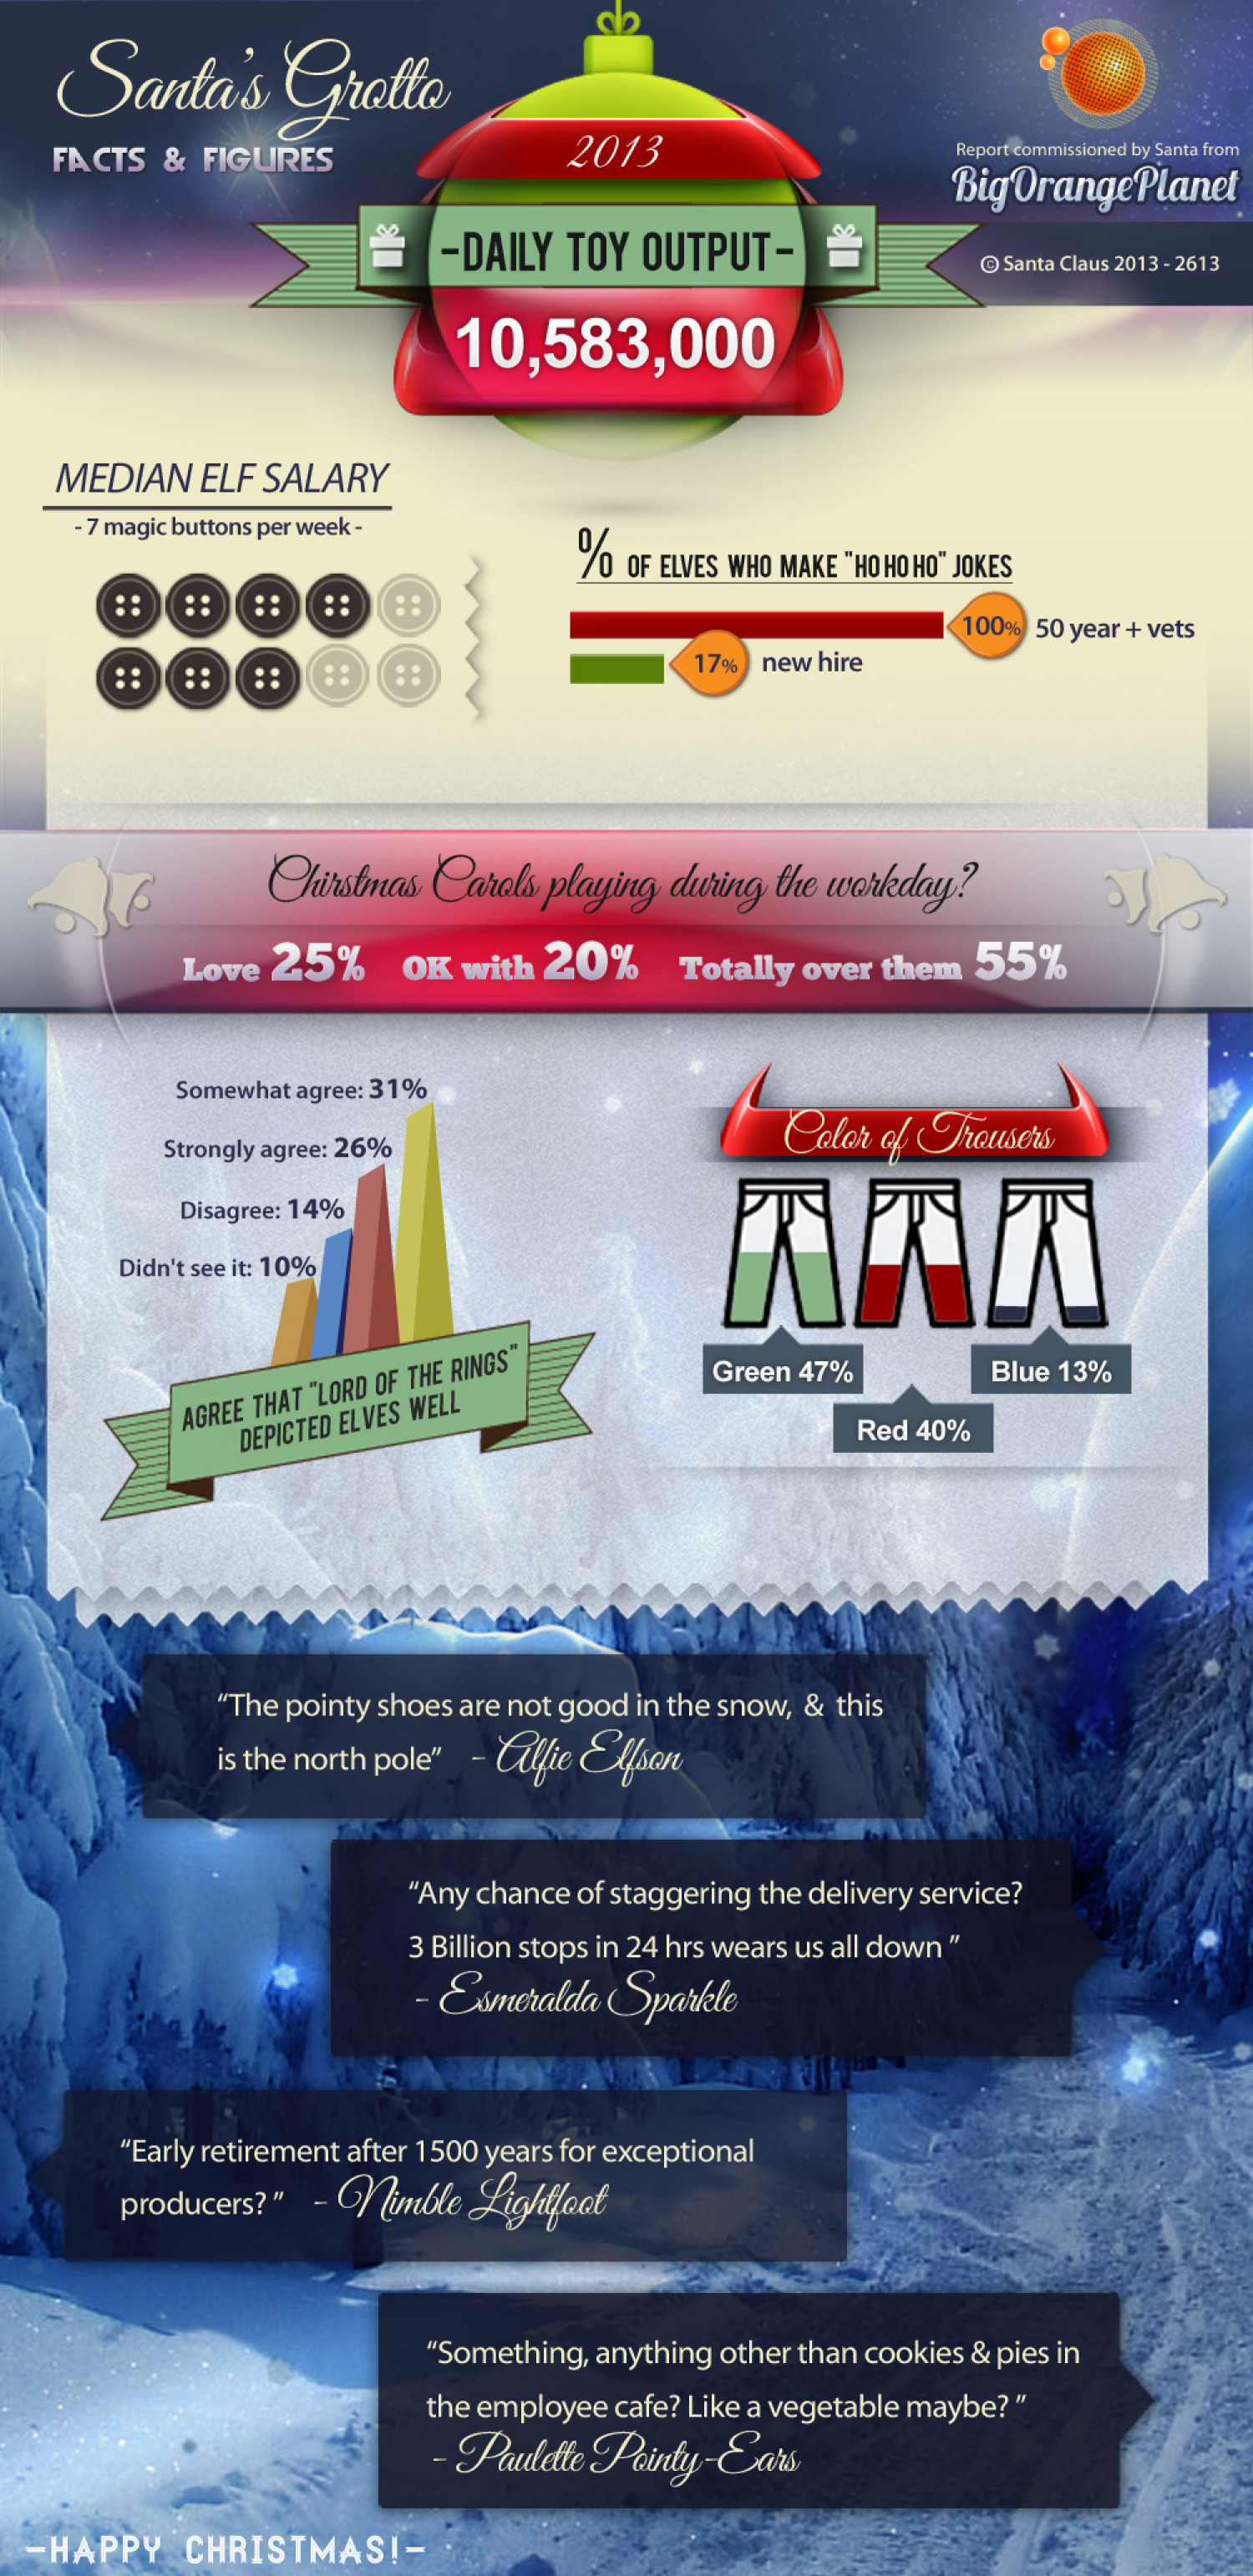 Santa Claus Grotto Facts and Figures Infographic